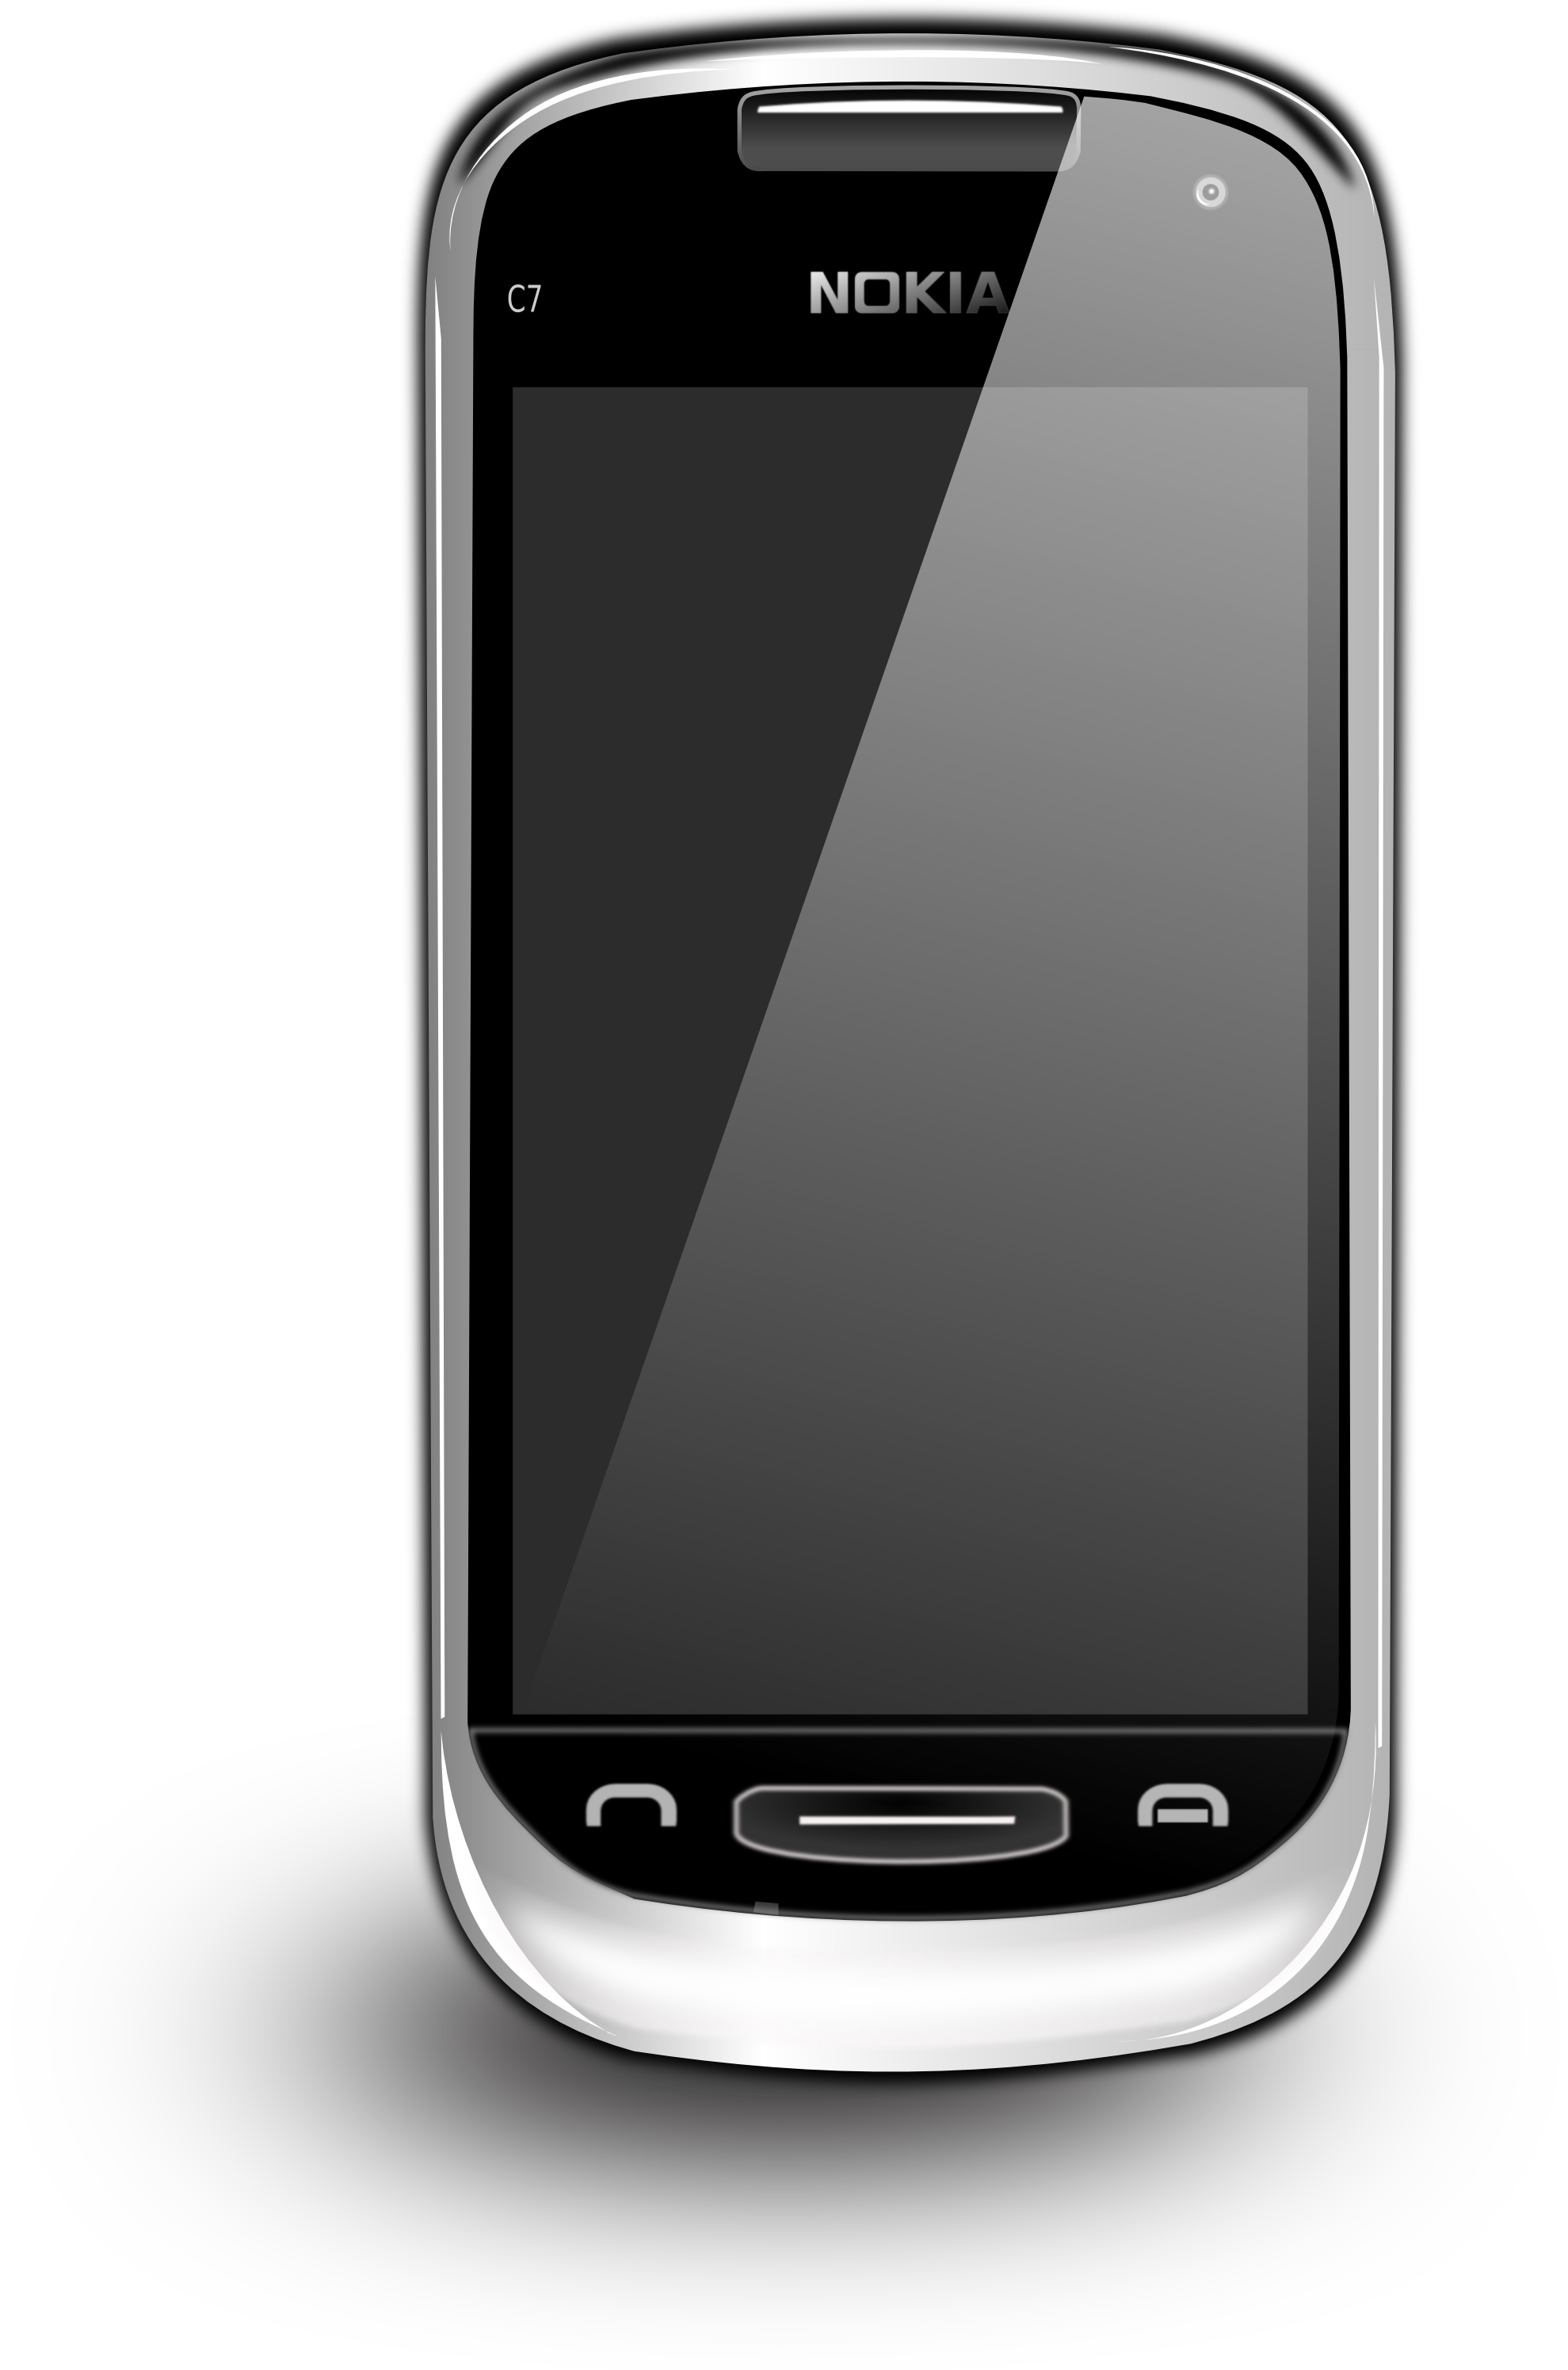 Phone clipart gadget. Android love